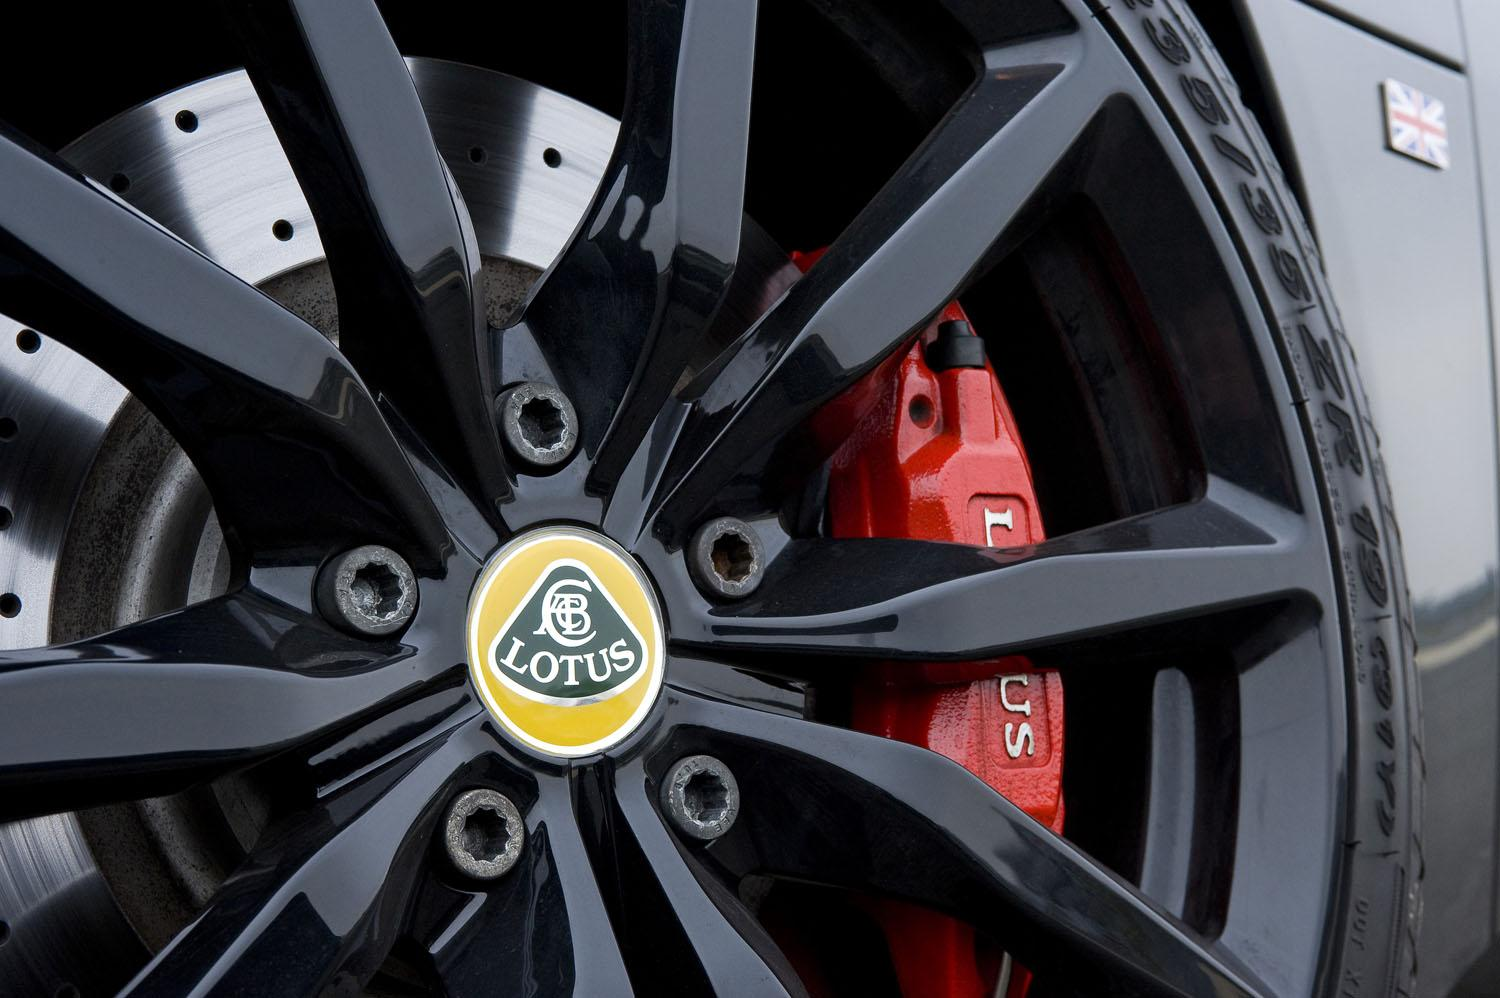 2018 Lotus SUV Concept wheel